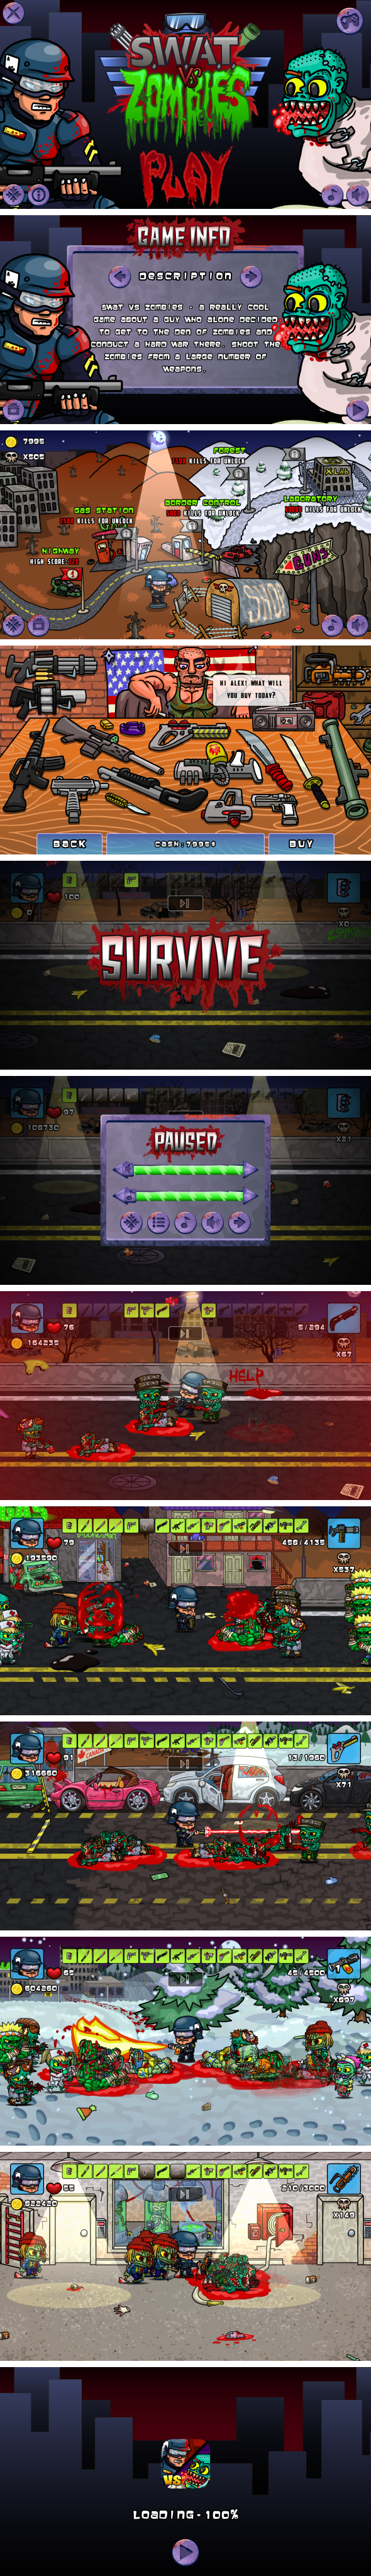 SWAT VS ZOMBIES - HTML5 Game 5 Levels + Mobile Version! (Construct 3 | Construct 2 | Capx) - 3